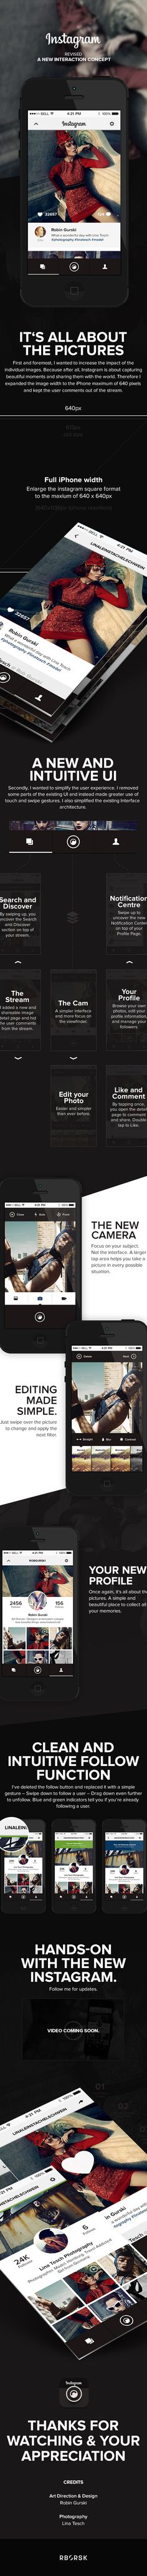 Instagram Revise - A new interaction concept by Robin Gurski, via Behance